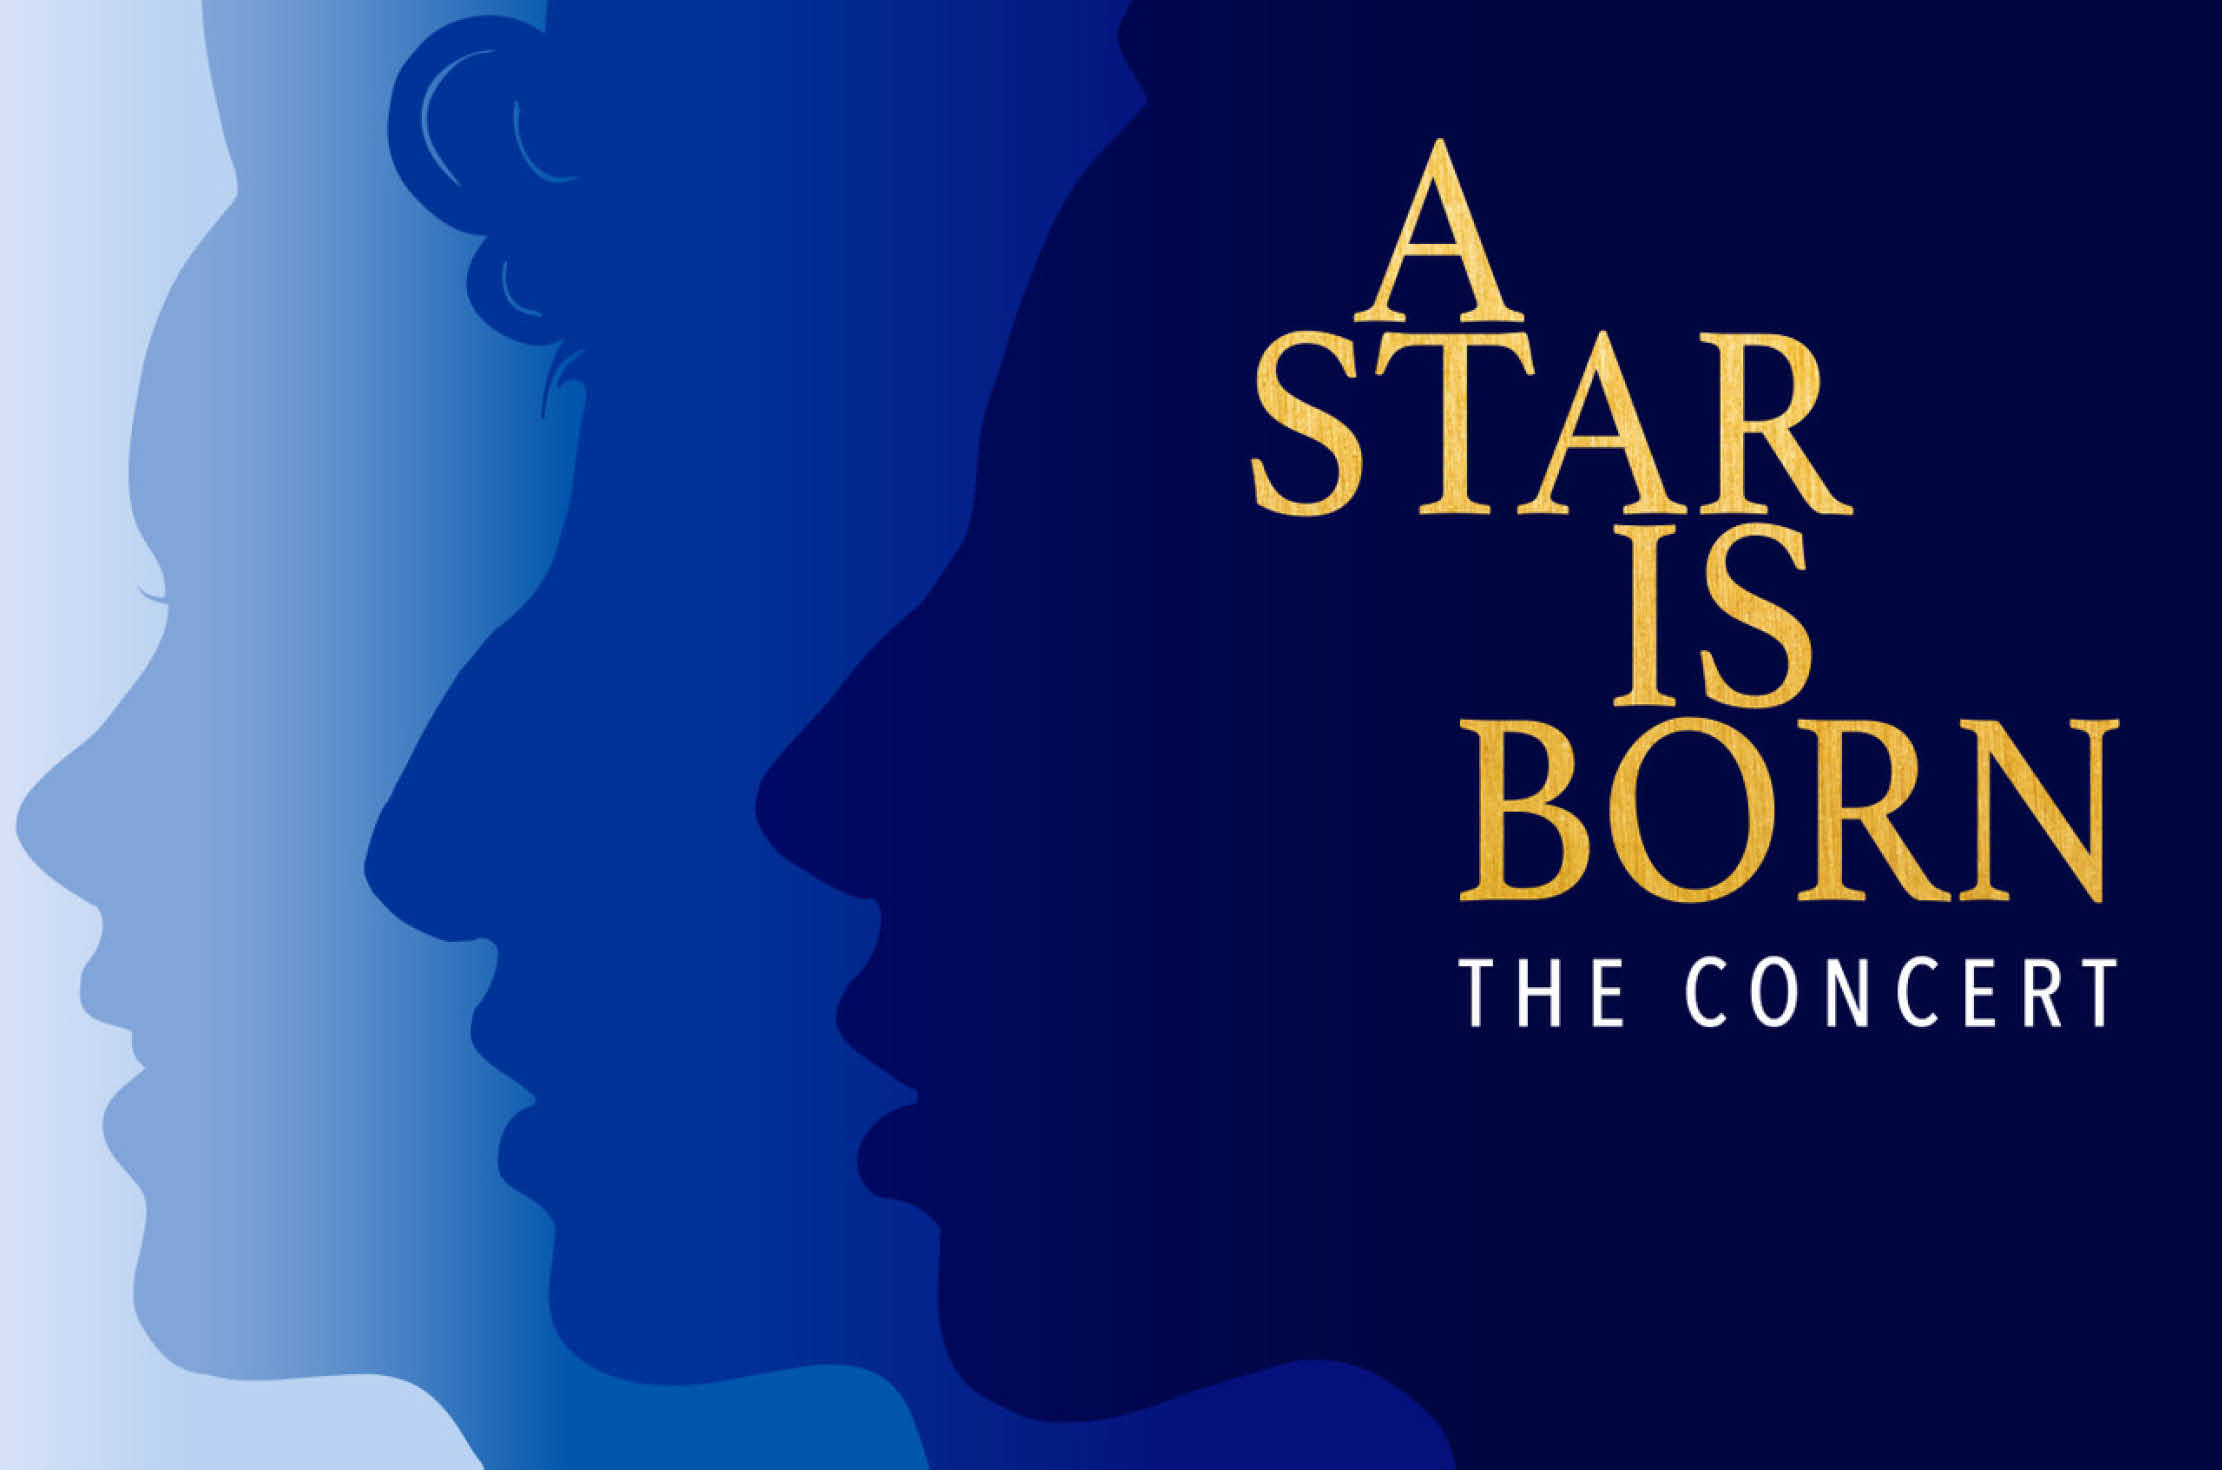 A Star is Born: The Concert